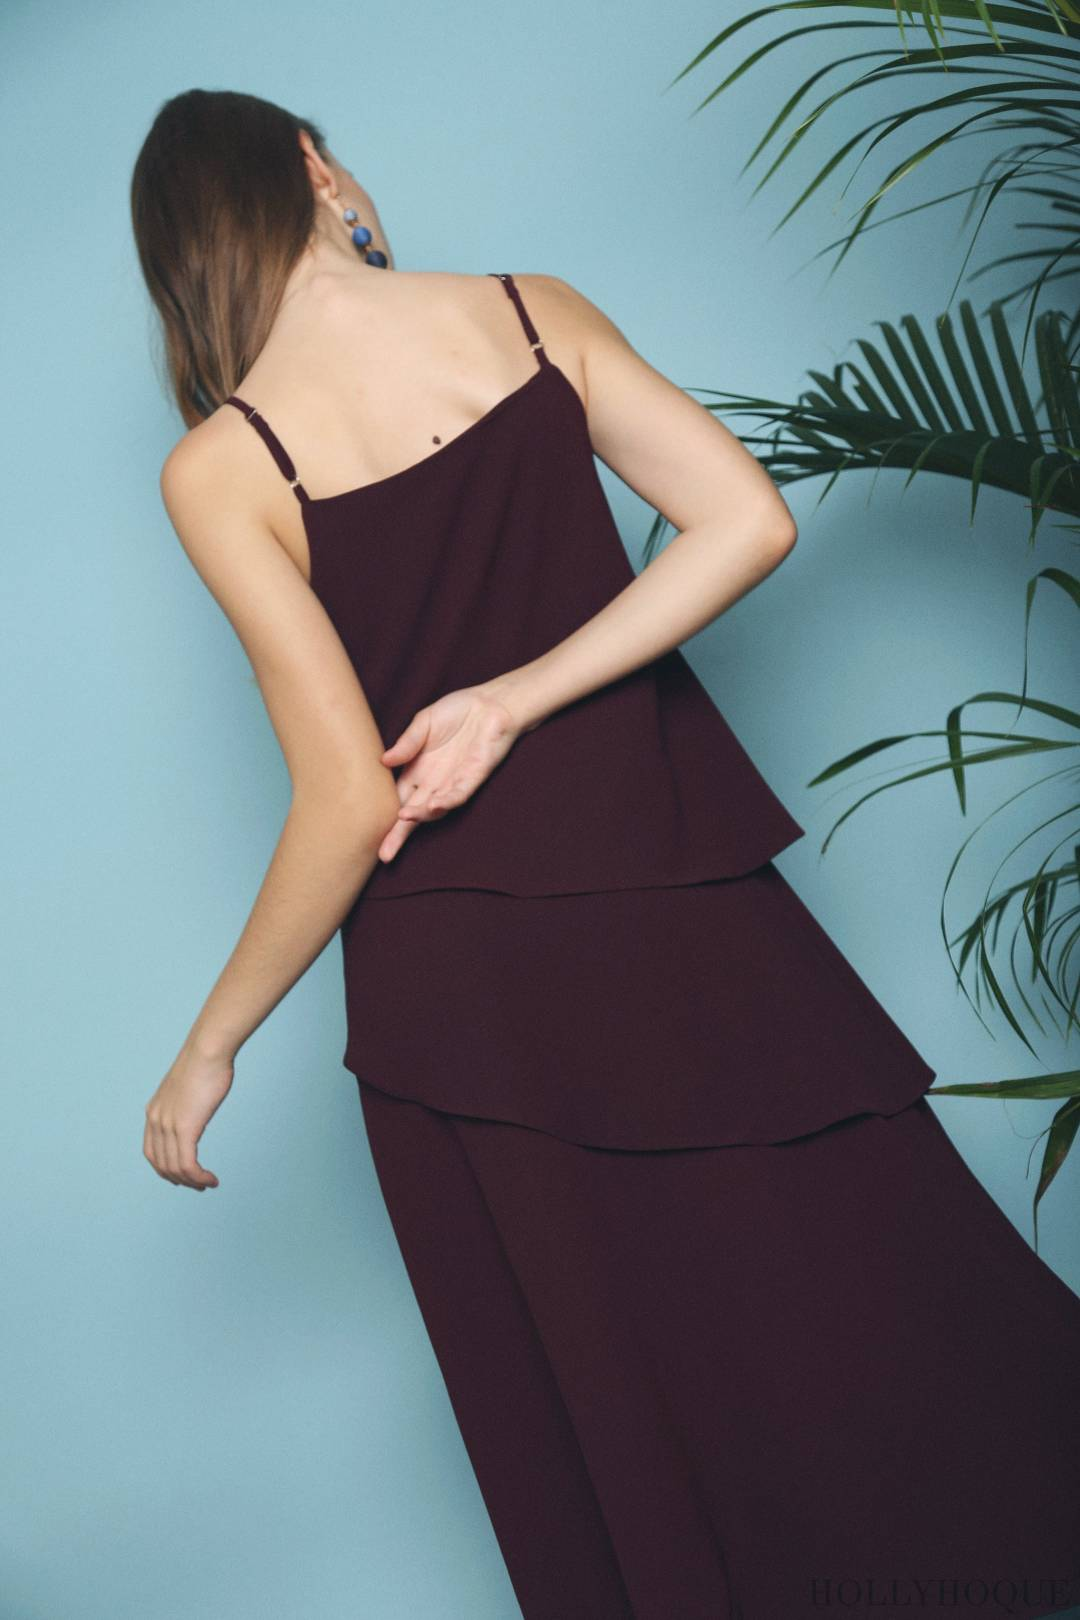 Seira Diagonal Tier Midi Dress Burgundy (Restock)